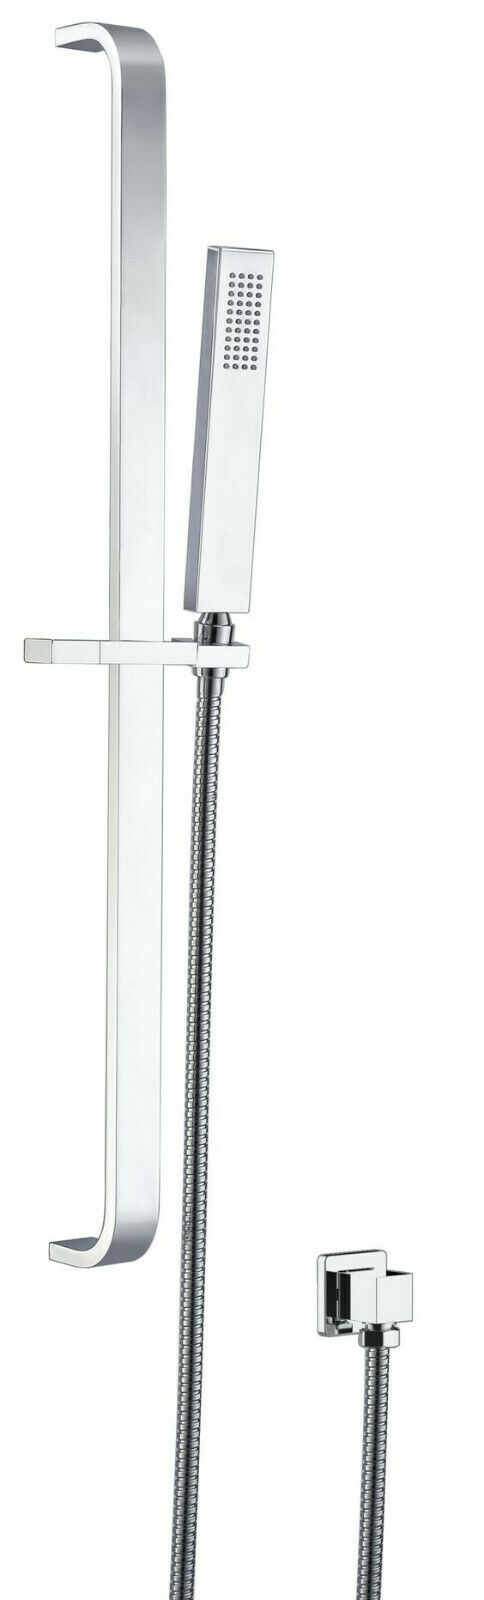 HIGH QUALITY SQUARED CHROME FINISH HANDHELD SHOWER WITH RAIL